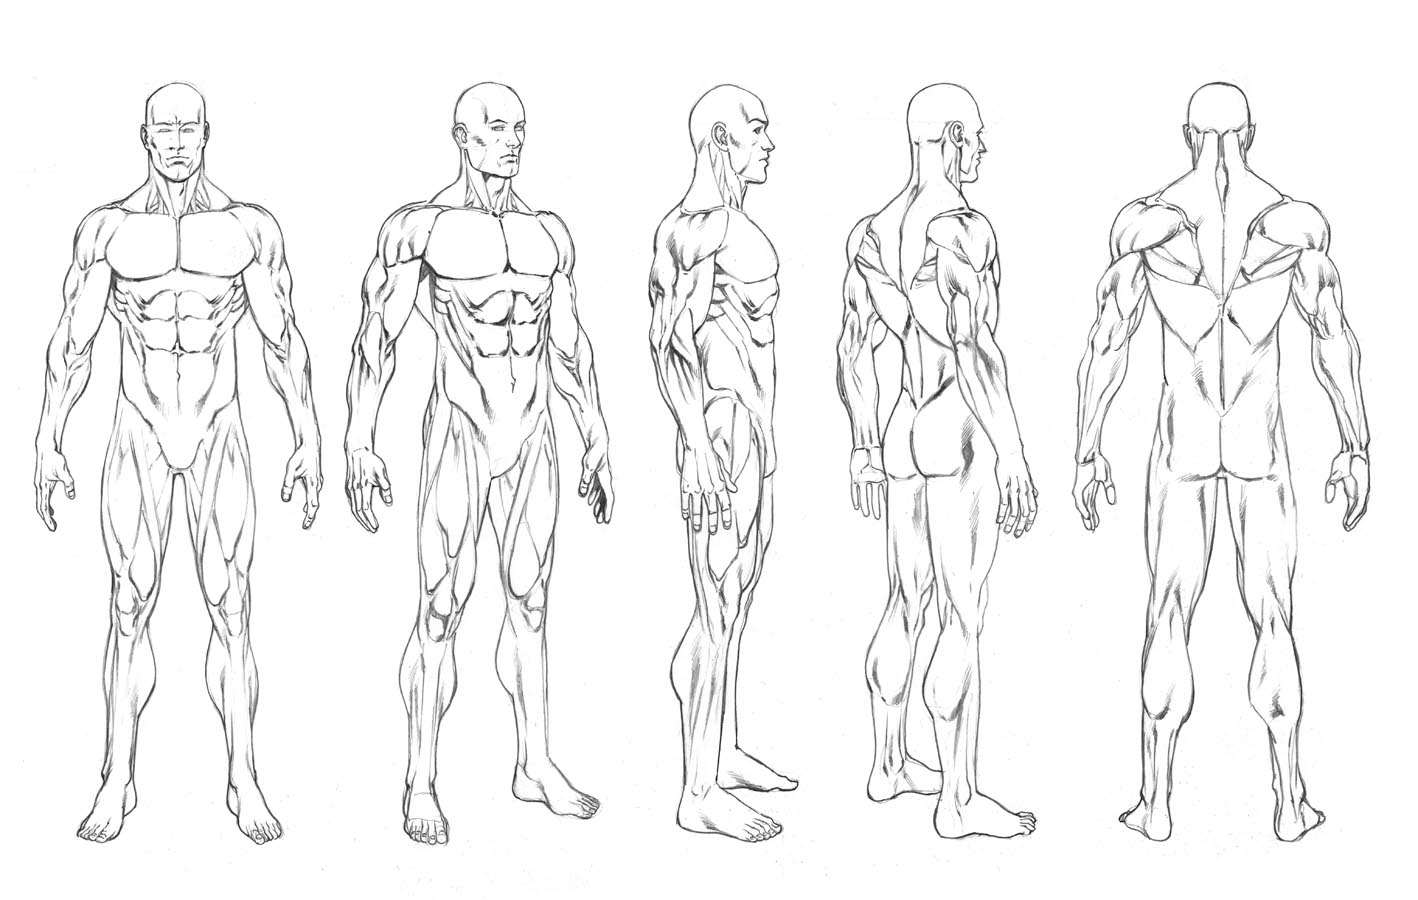 Character Design Outline : Robert atkins art character turnarounds and figure